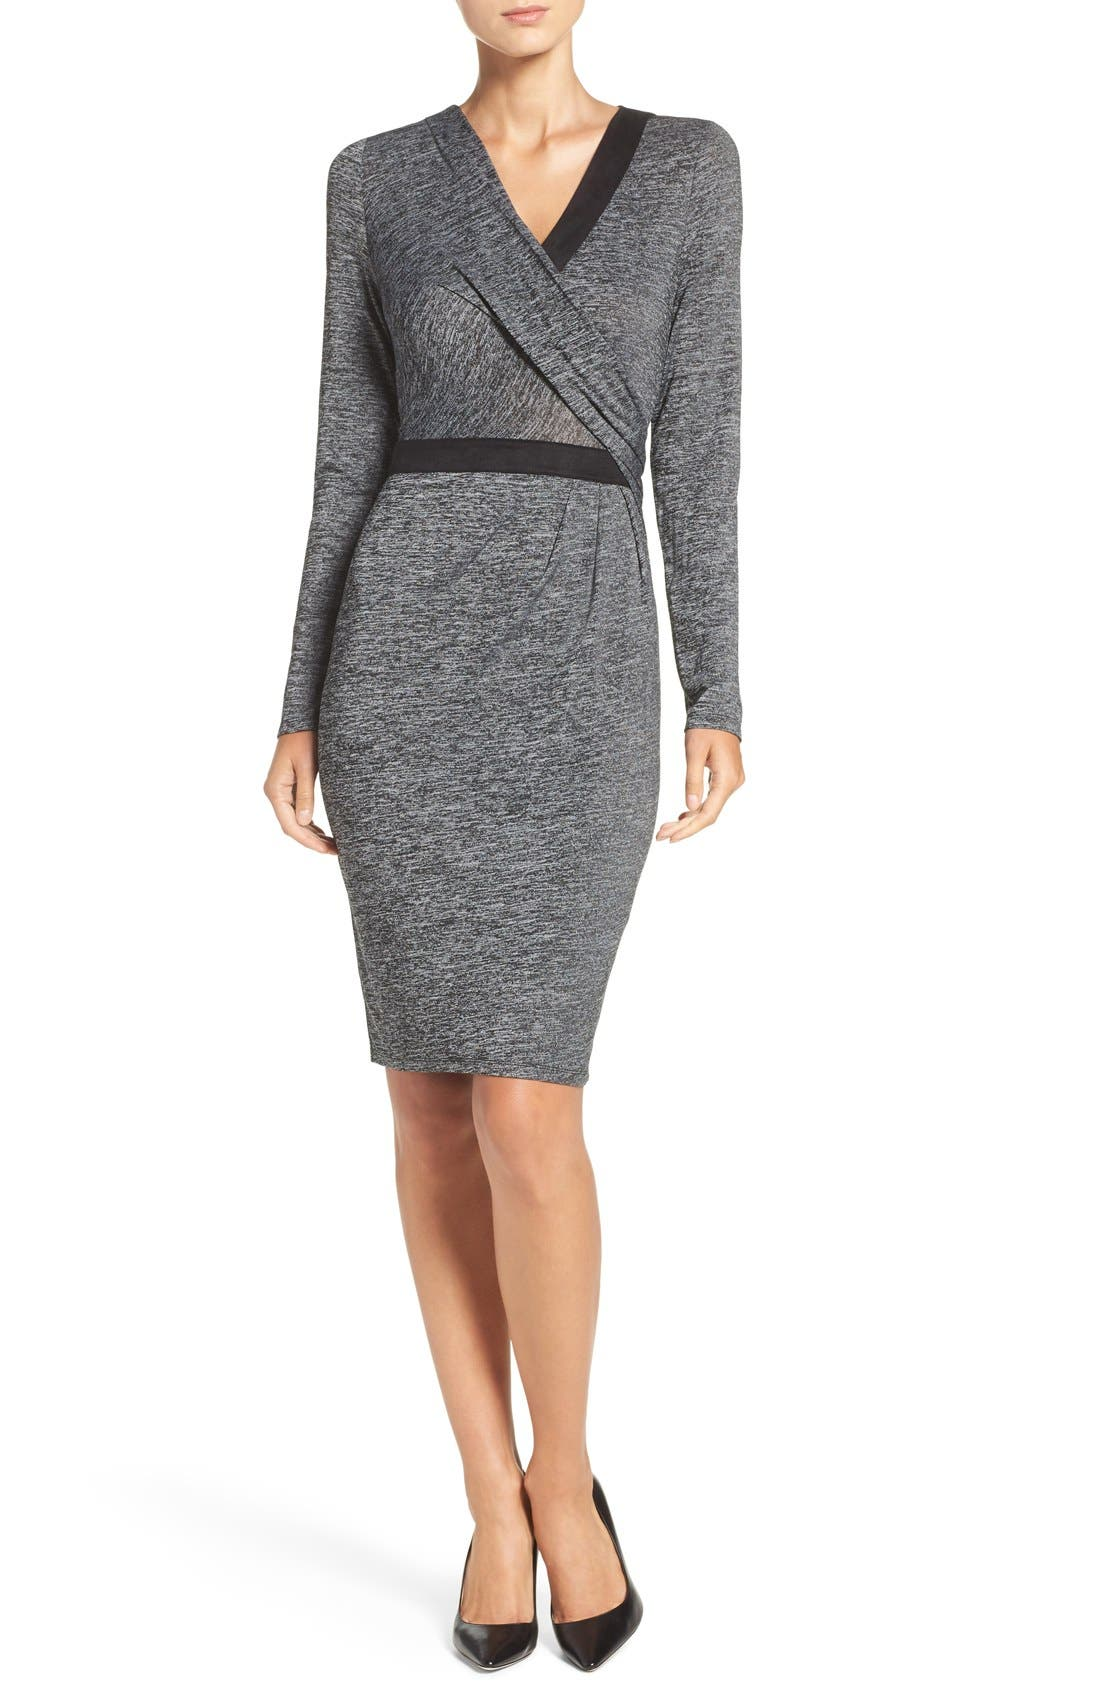 Main Image - Adrianna Papell Knit Faux Wrap Dress